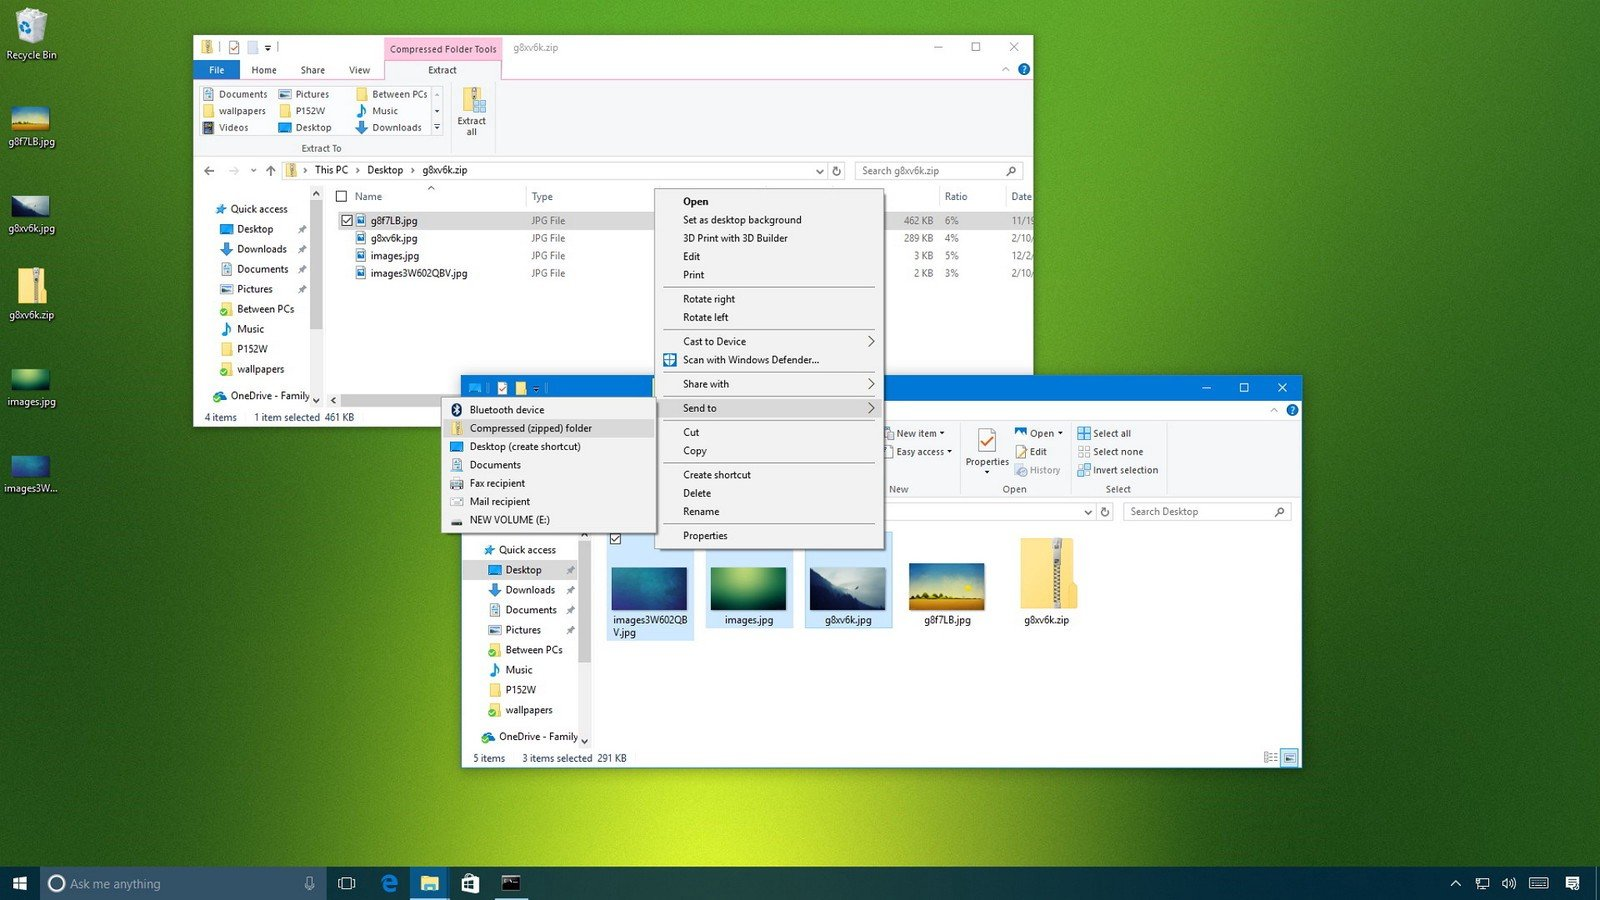 Windows 10. You can still play with files, even though I feel sometimes like it looks down on me when I do.